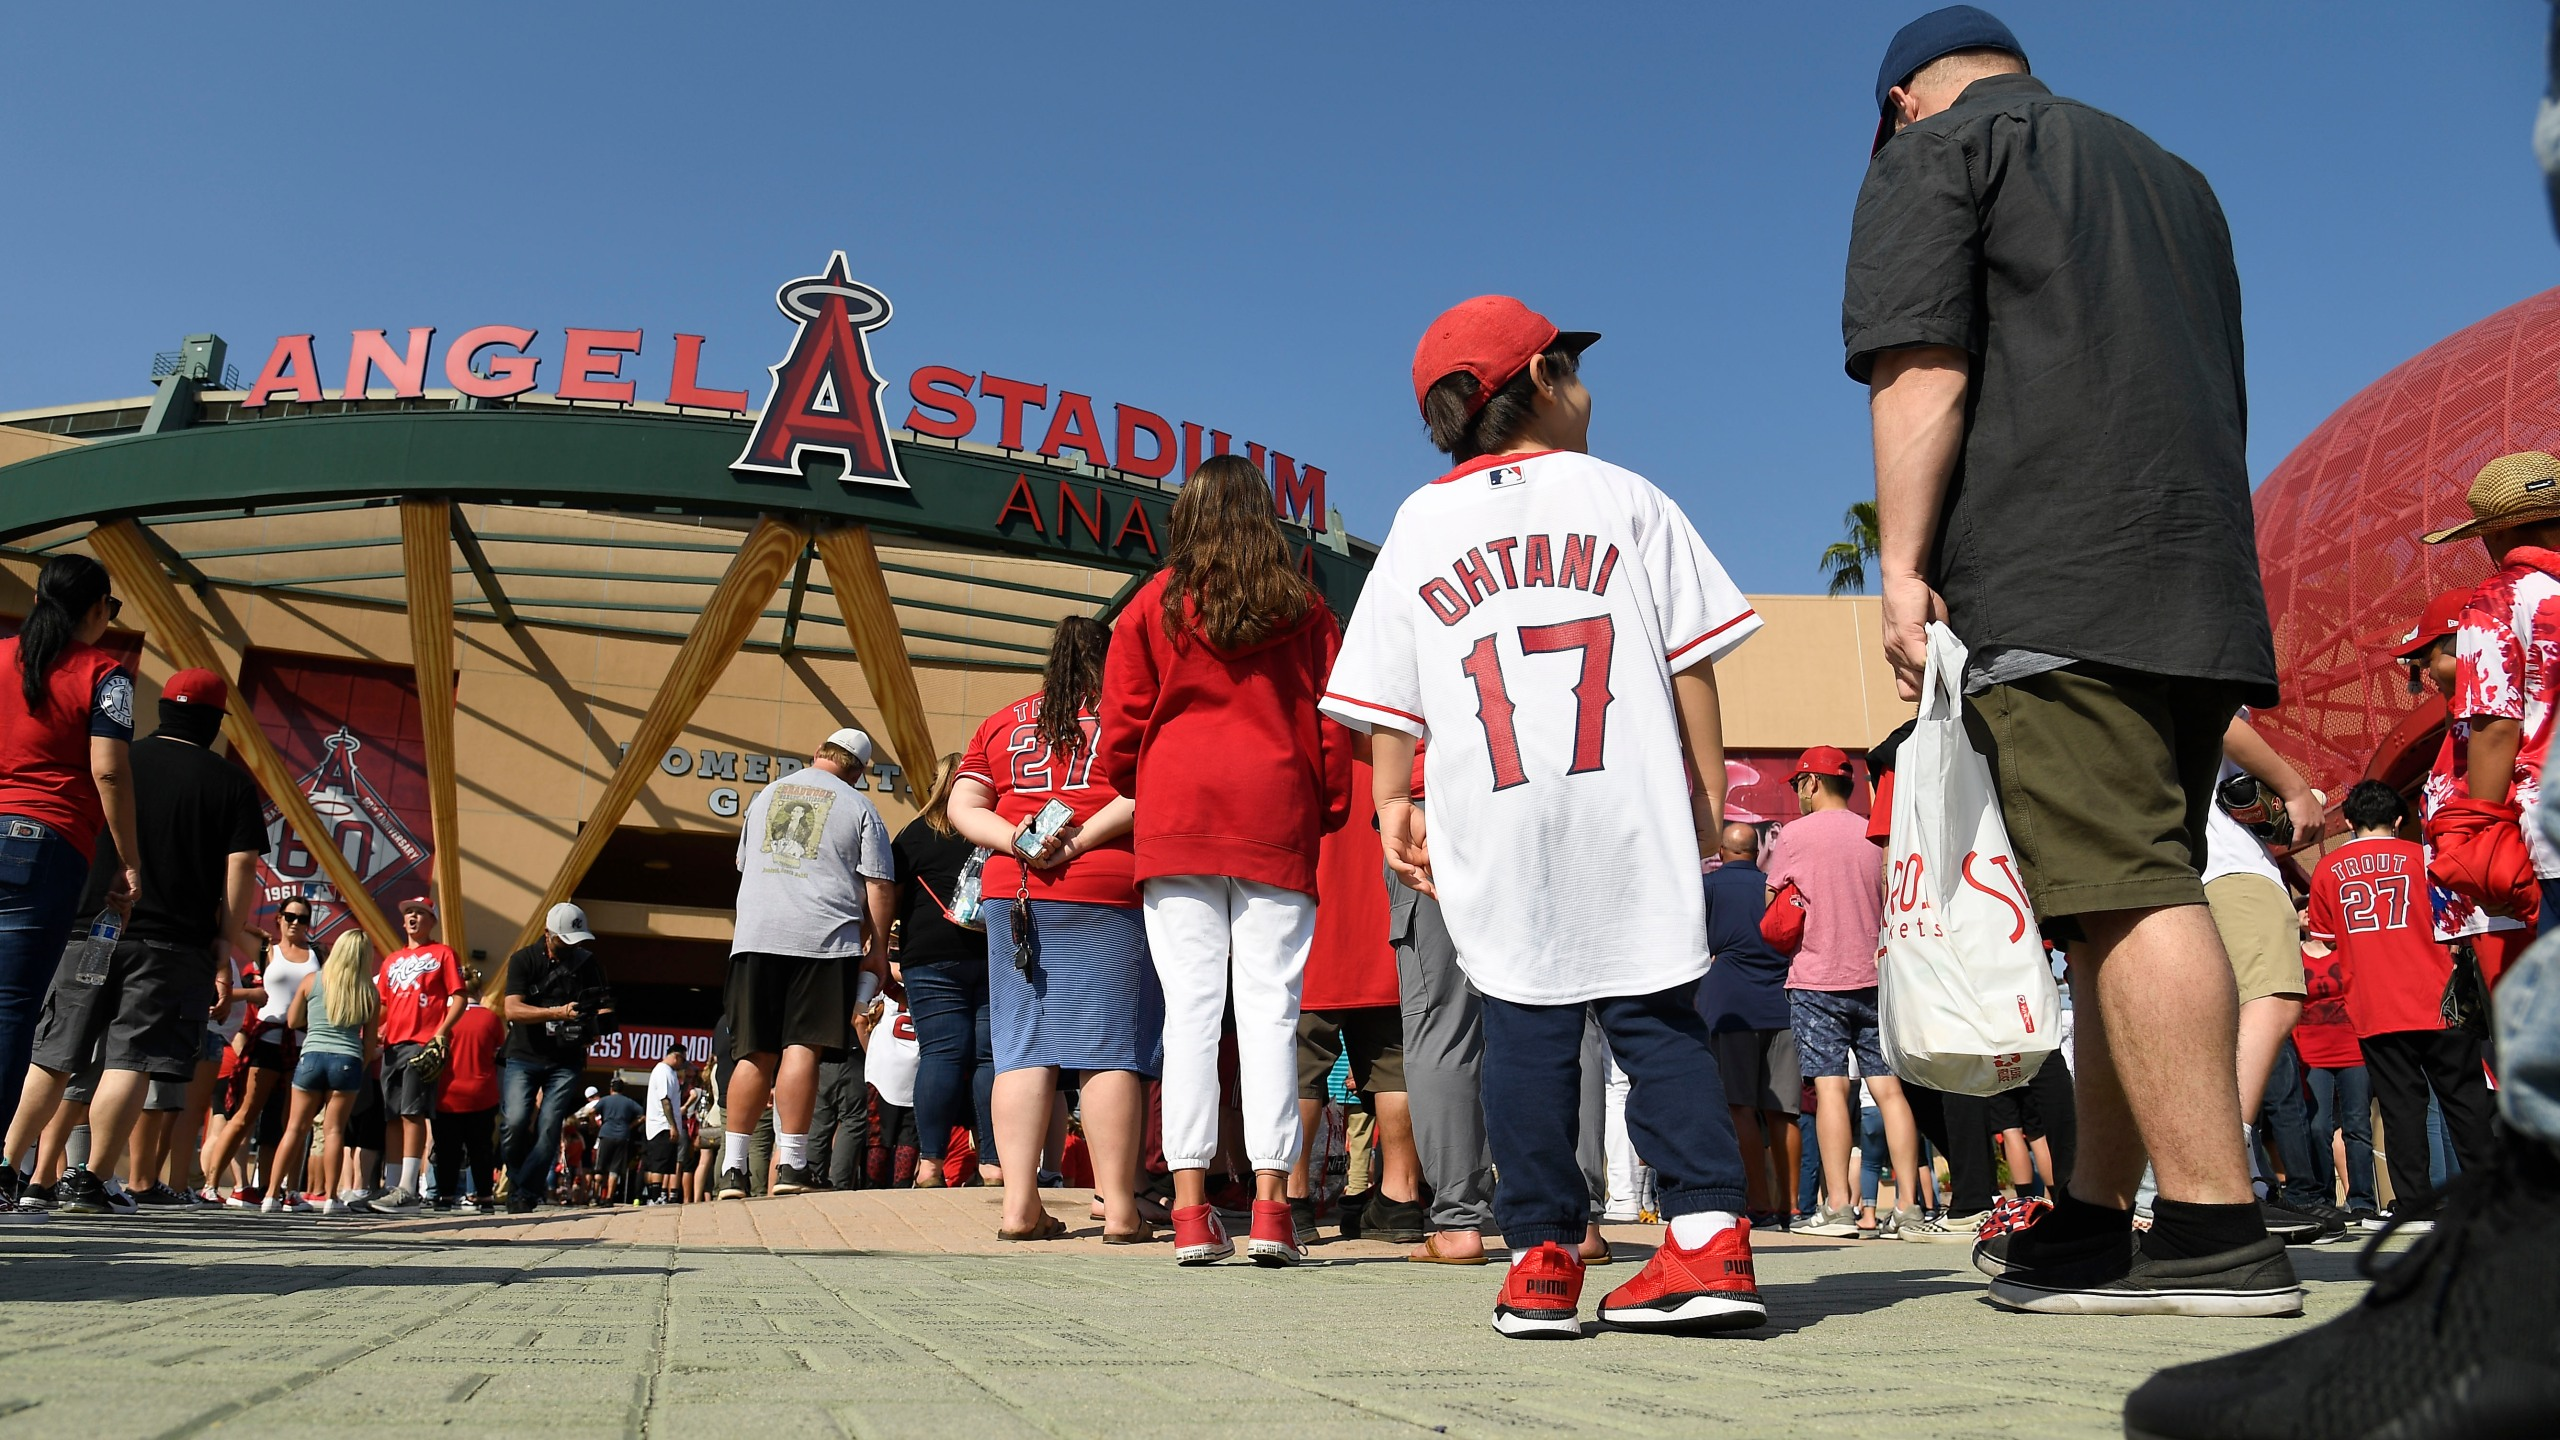 Fans wait to enter Angel Stadium in Anaheim for a baseball game between the Detroit Tigers and Los Angeles Angels on June 17, 2021, the venue's first full capacity game since the start of the coronavirus pandemic. (Kevork Djansezian / Getty Images)